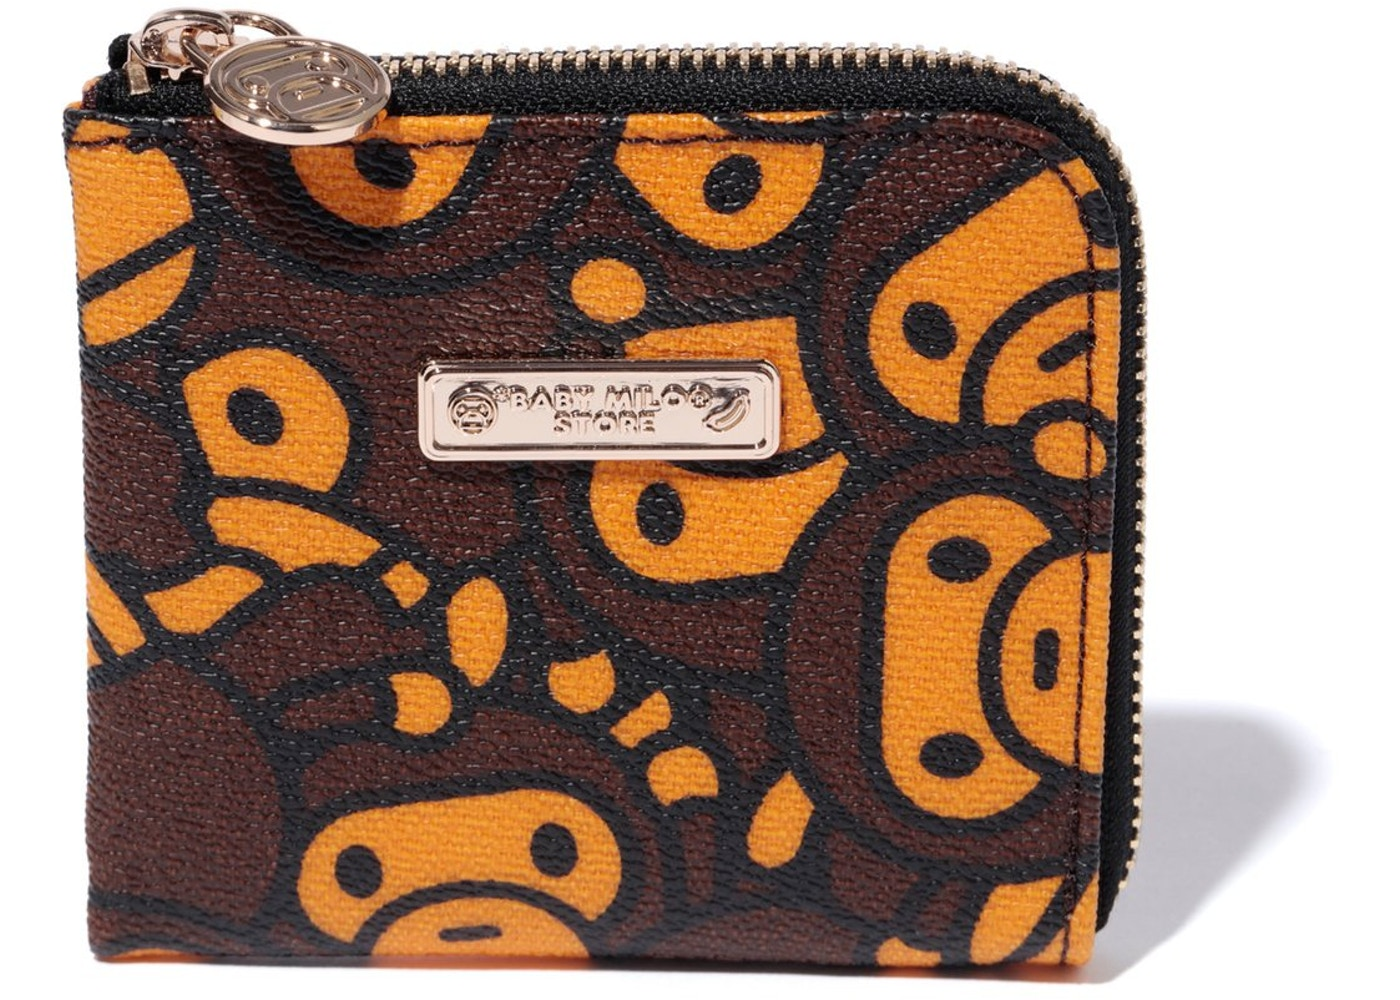 acb437176 Bape Wallet Zip S All Baby Milo Pvc Brown Bape Color Camo Small Coin Purse  | Dopestudent Lyst - A Bathing Ape ...